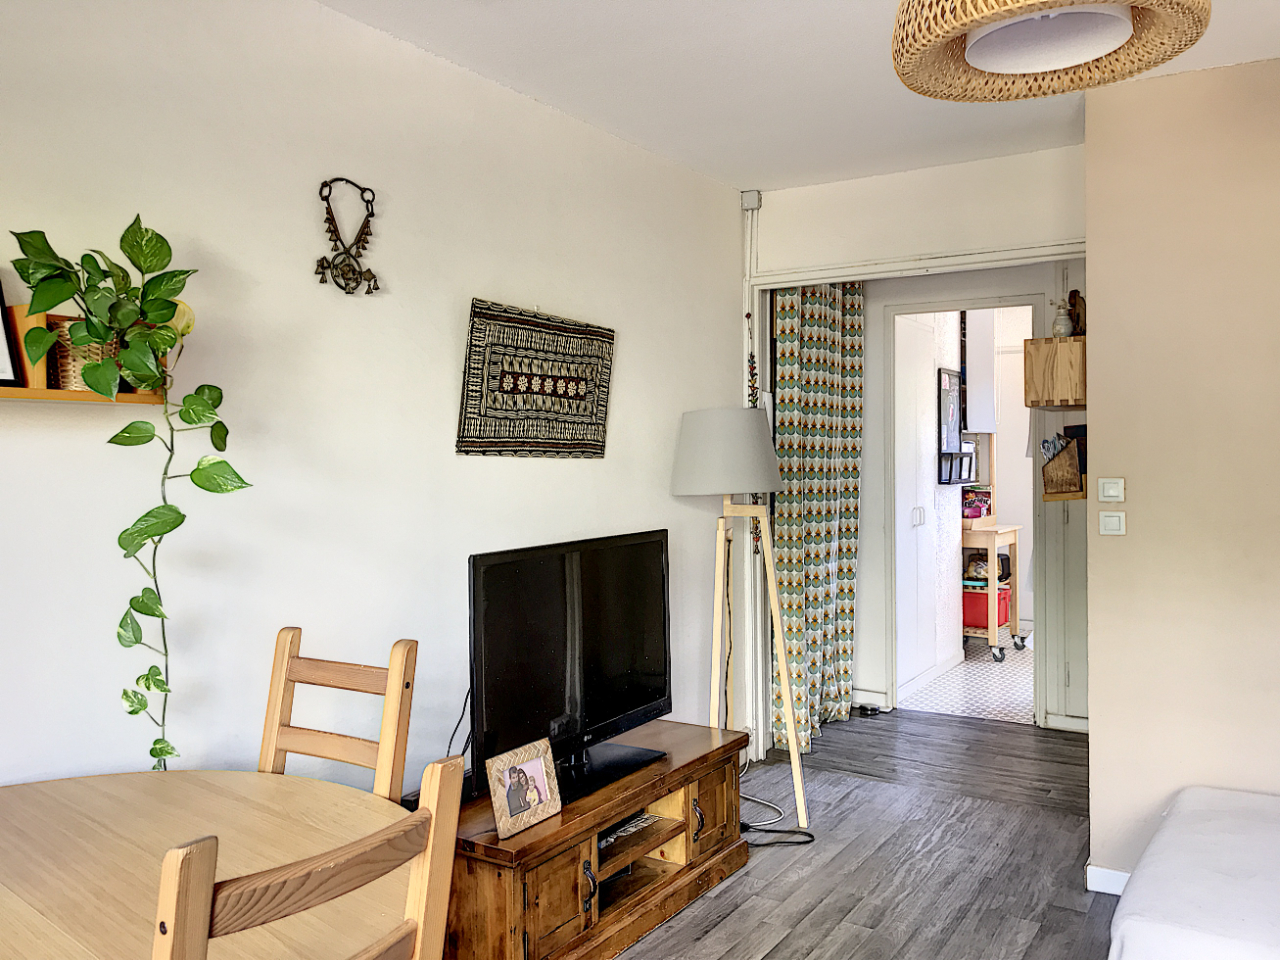 A vendre appartement Marseille 13013 Chutes Lavie-Lacordaire T3 58 m²